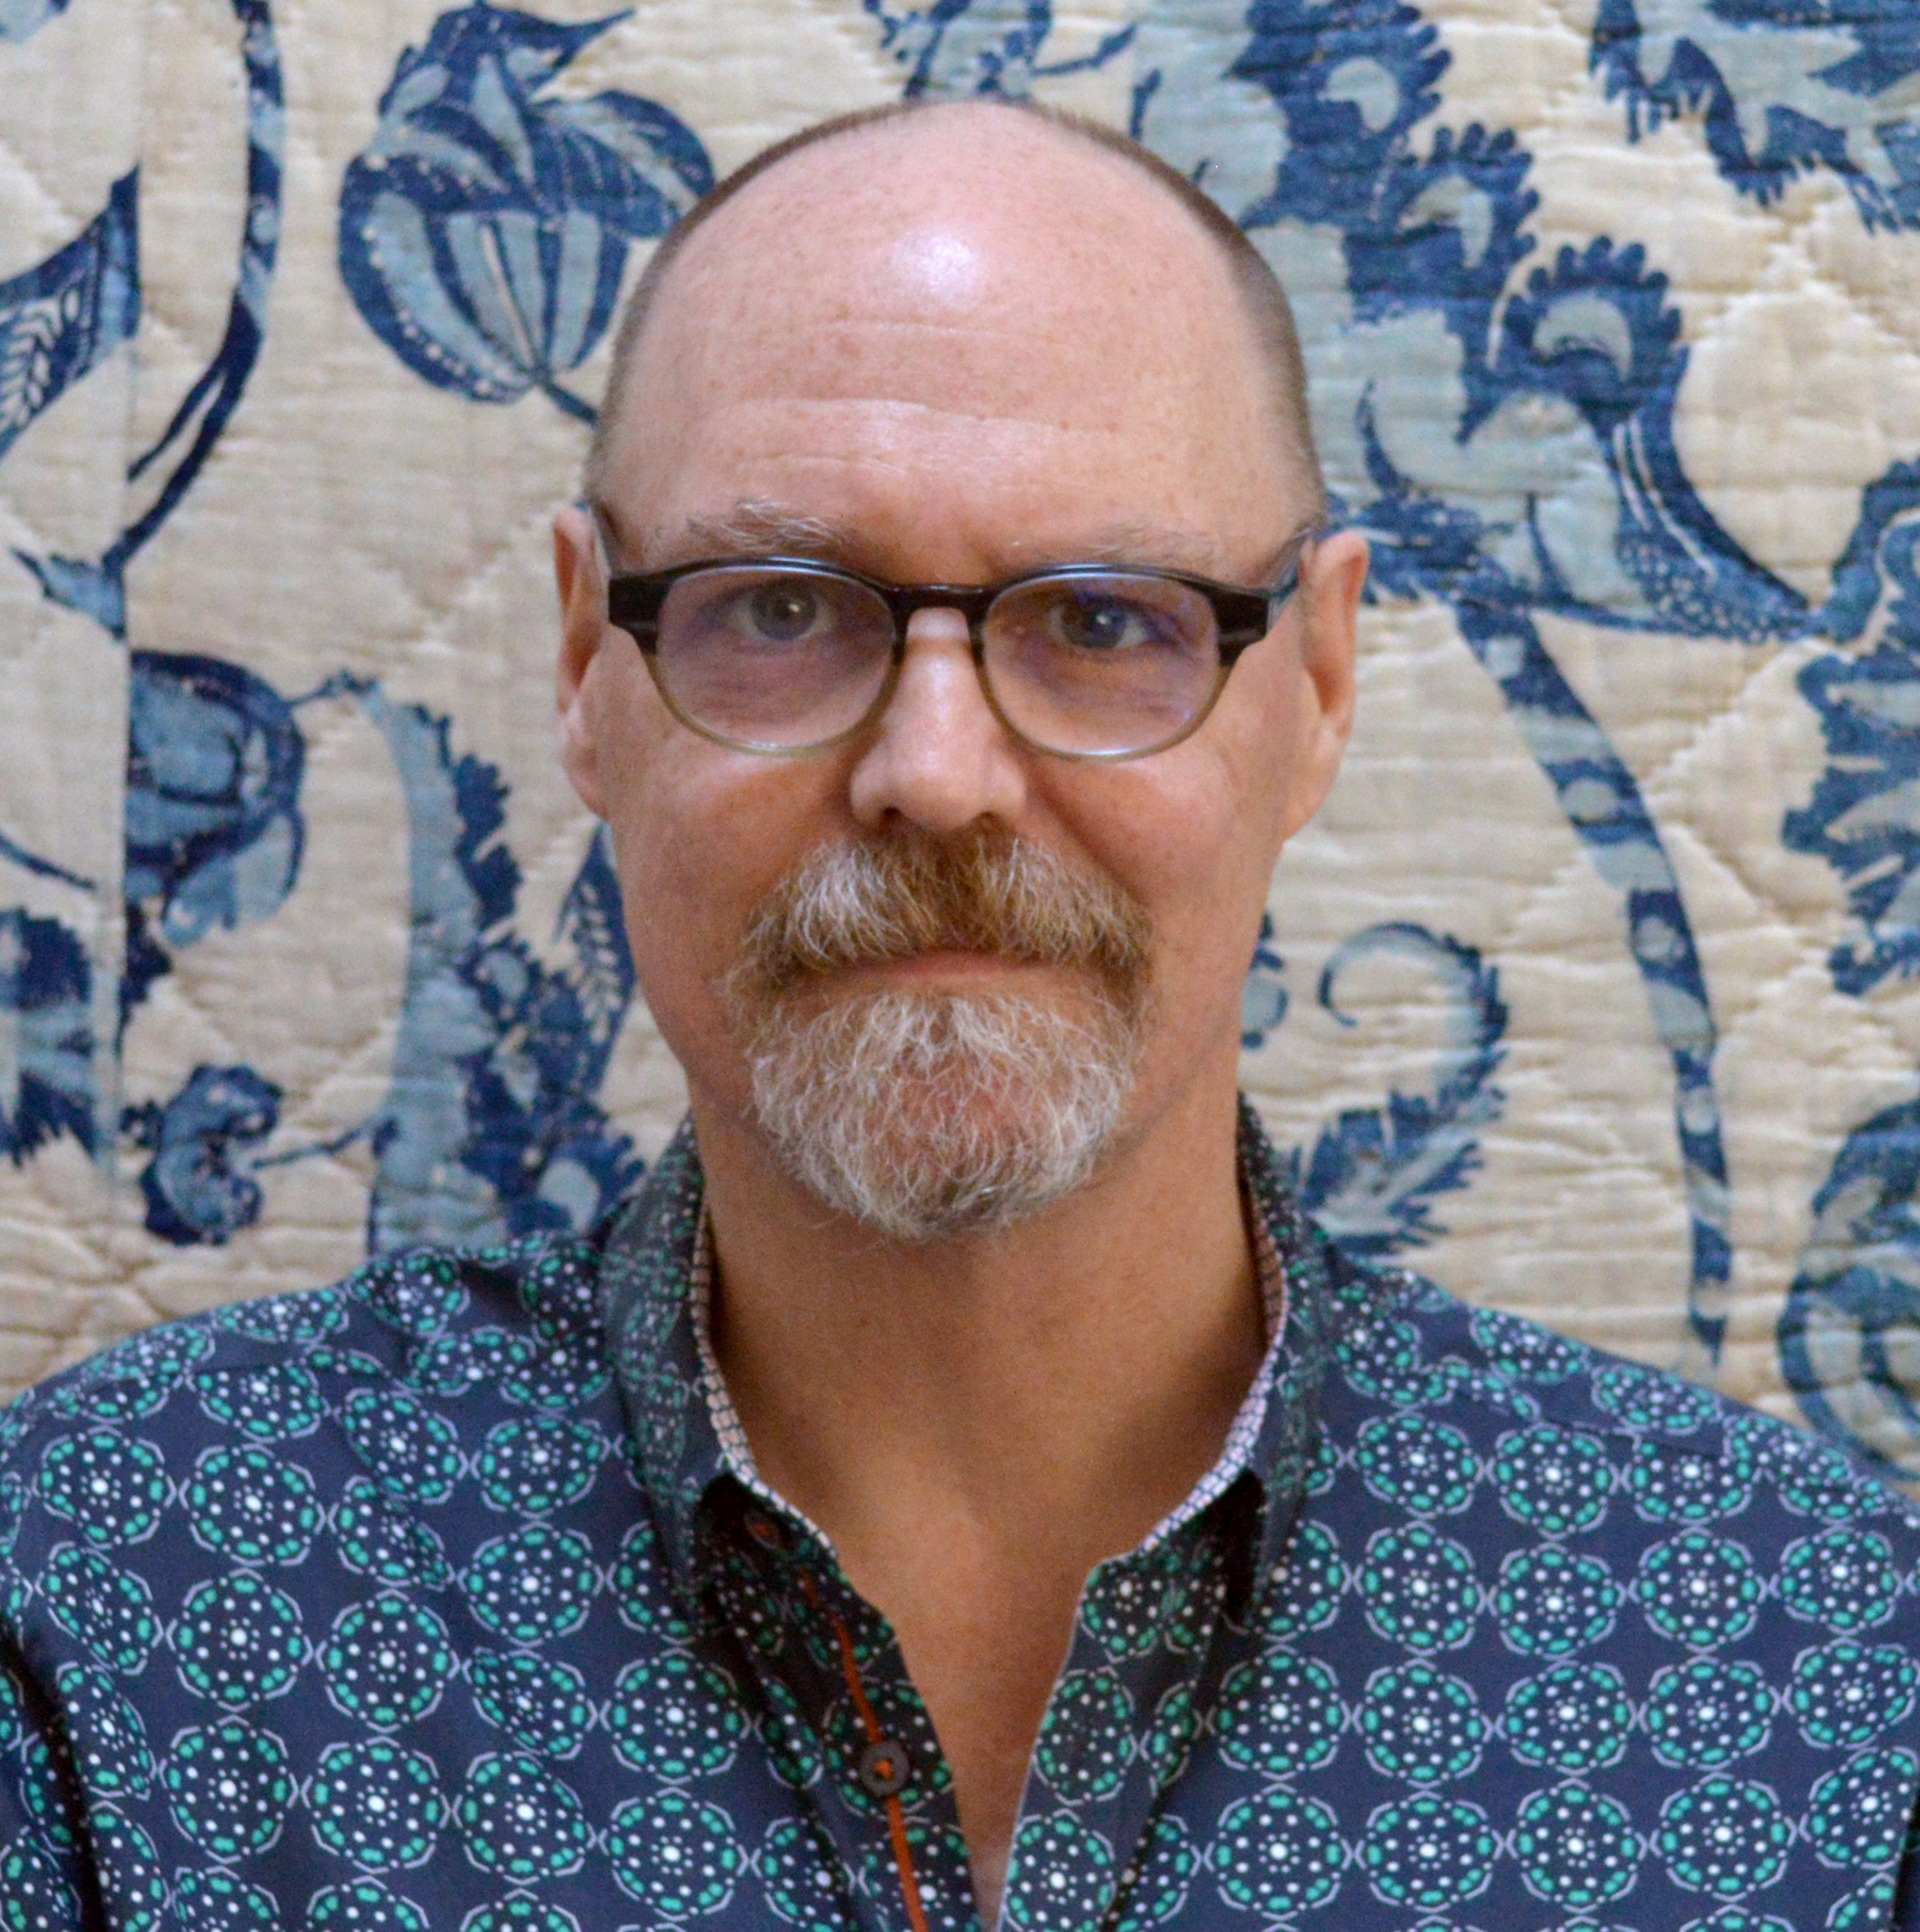 Bill volckening - Bill Volckening is a quilt collector who lives in Portland, Oregon. He started collecting 30 years ago, and his collection includes more than 500 examples made between 1760 and the present day. Quilts from his collection have been featured in exhibitions and publications worldwide.